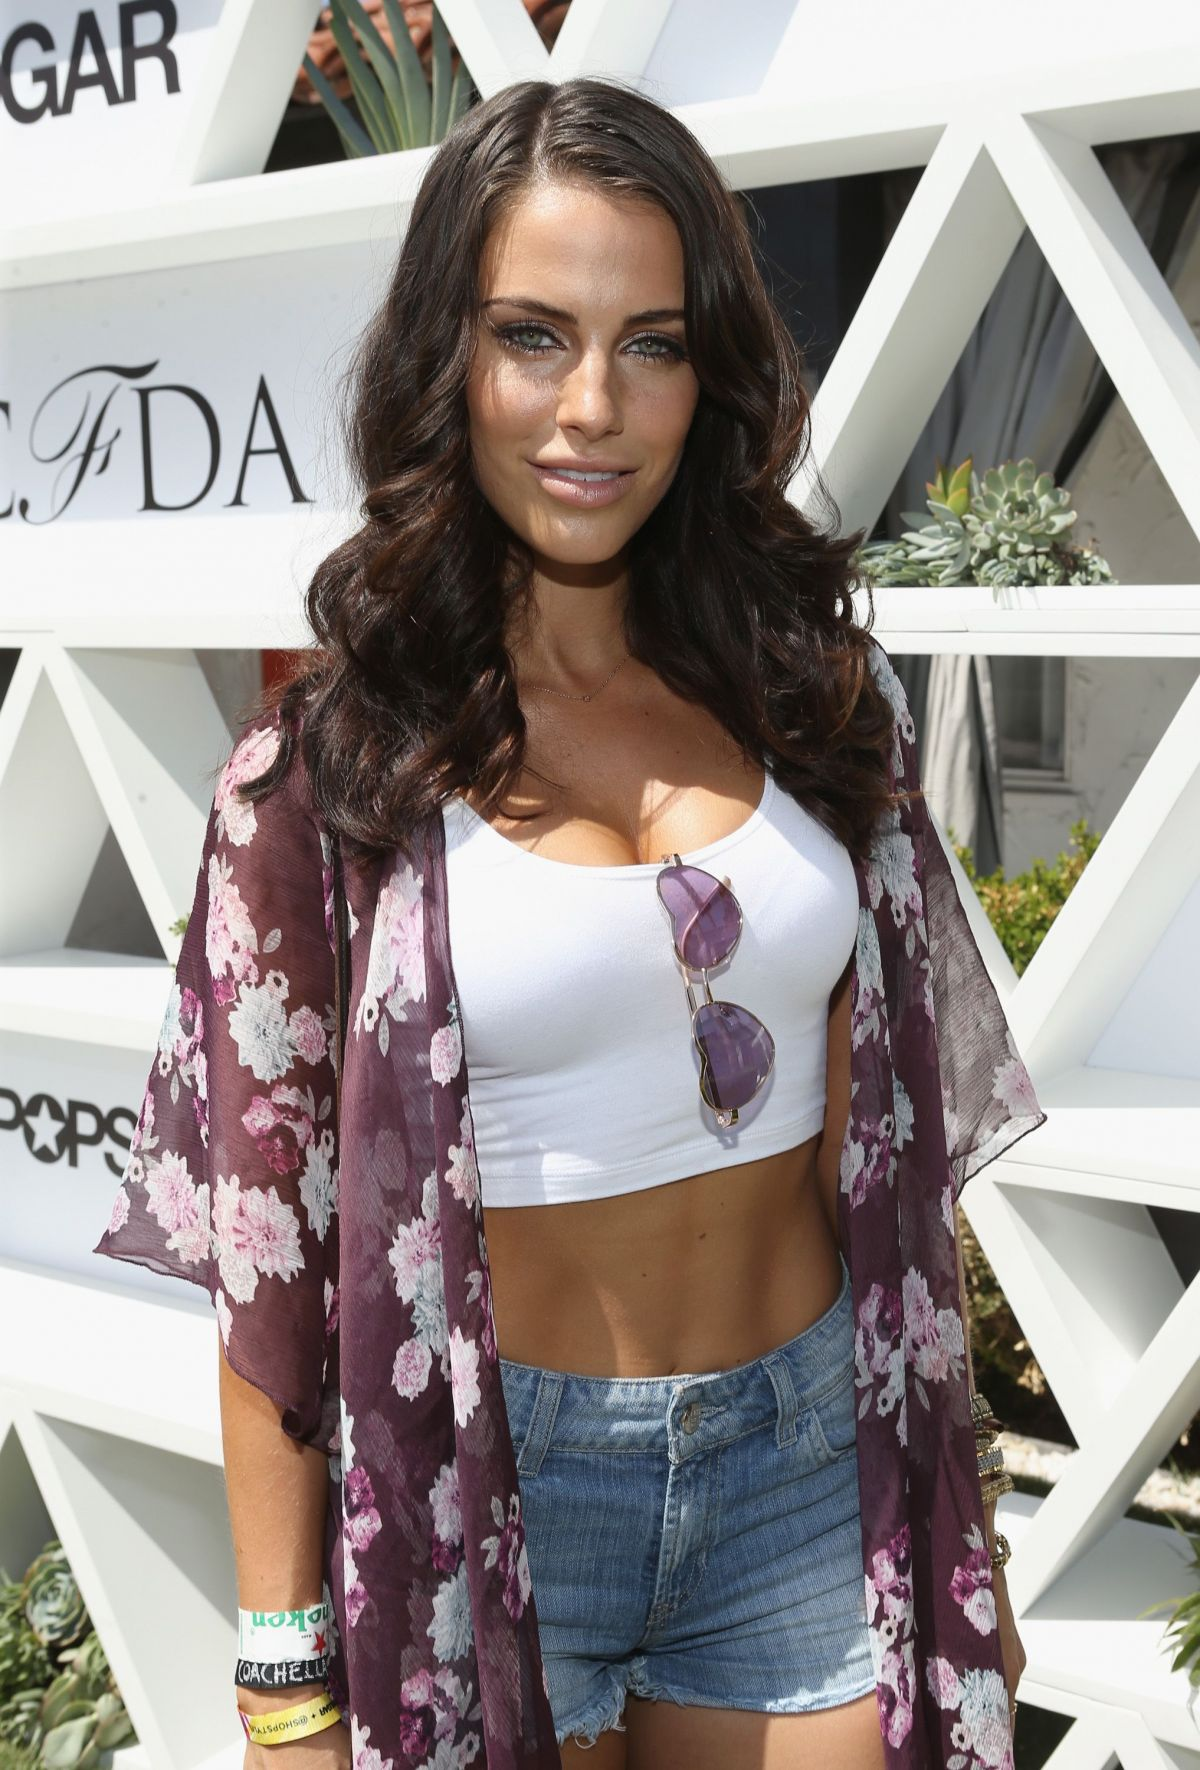 jessica lowndes newsjessica lowndes gif, jessica lowndes tumblr gif, jessica lowndes 2016, jessica lowndes фото, jessica lowndes listal, jessica lowndes source, jessica lowndes style, jessica lowndes dated, jessica lowndes makeup, jessica lowndes 90210, jessica lowndes saying goodbye, jessica lowndes png, jessica lowndes fool, jessica lowndes site, jessica lowndes wdw, jessica lowndes screencaps, jessica lowndes underneath the mask, jessica lowndes news, jessica lowndes blog, jessica lowndes interview